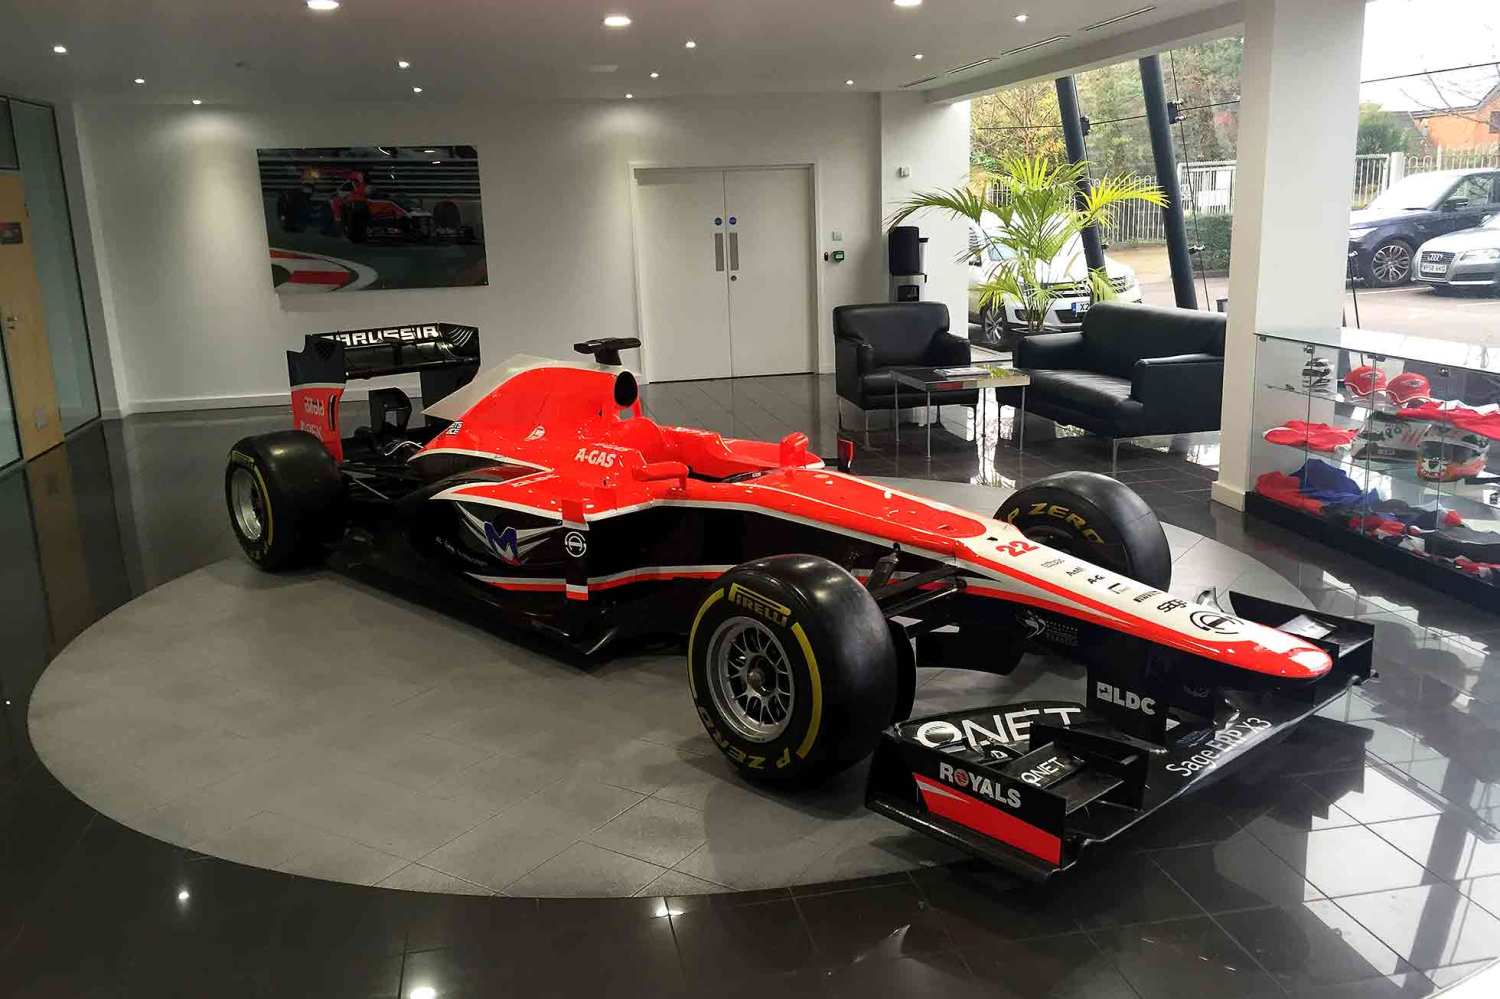 Marussia F1 auction